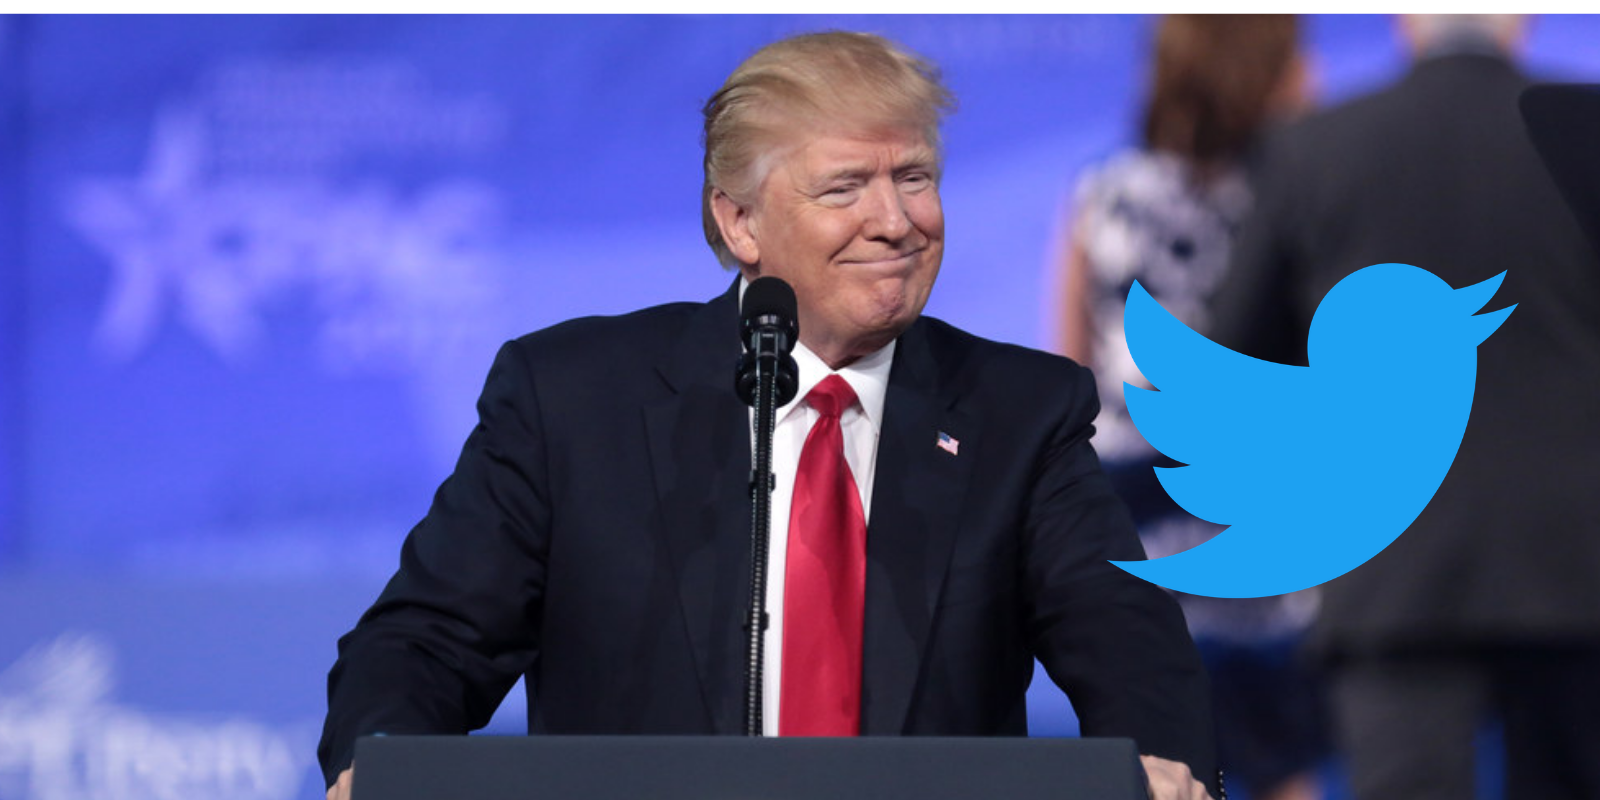 Twitter has censored 13 out of the past 40 Trump posts